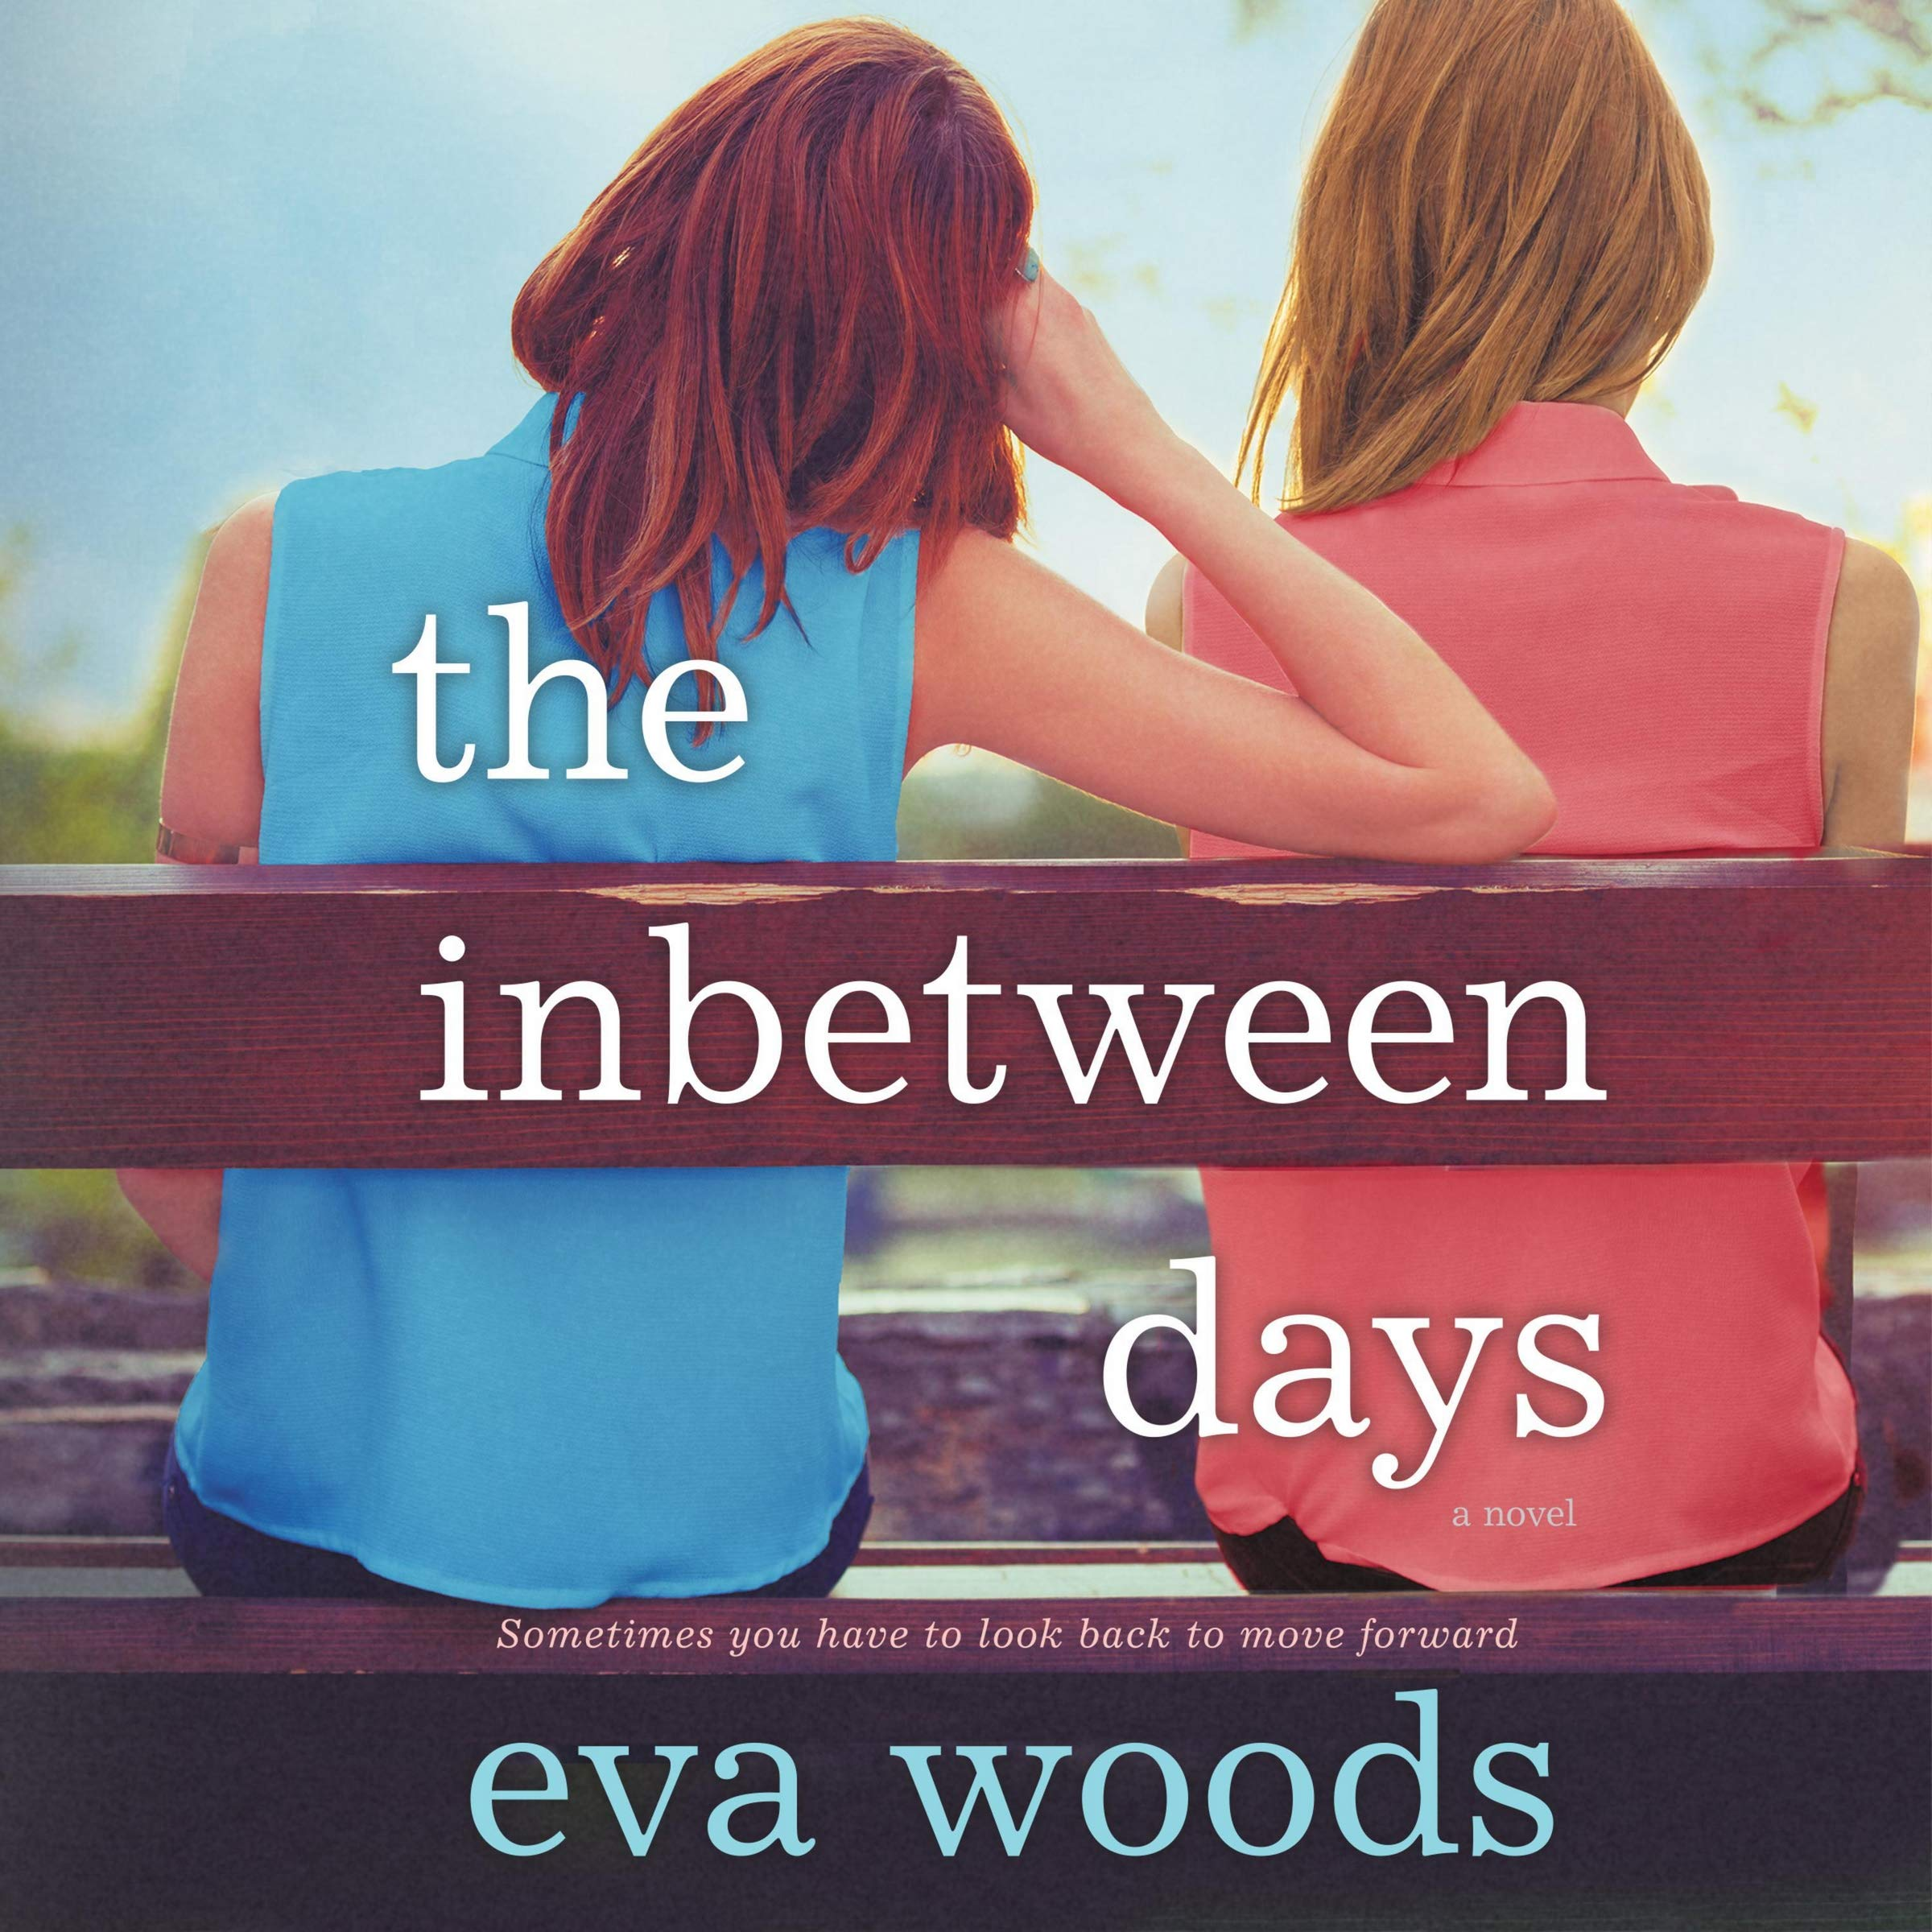 The Inbetween Days by Harlequin Audio and Blackstone Audio